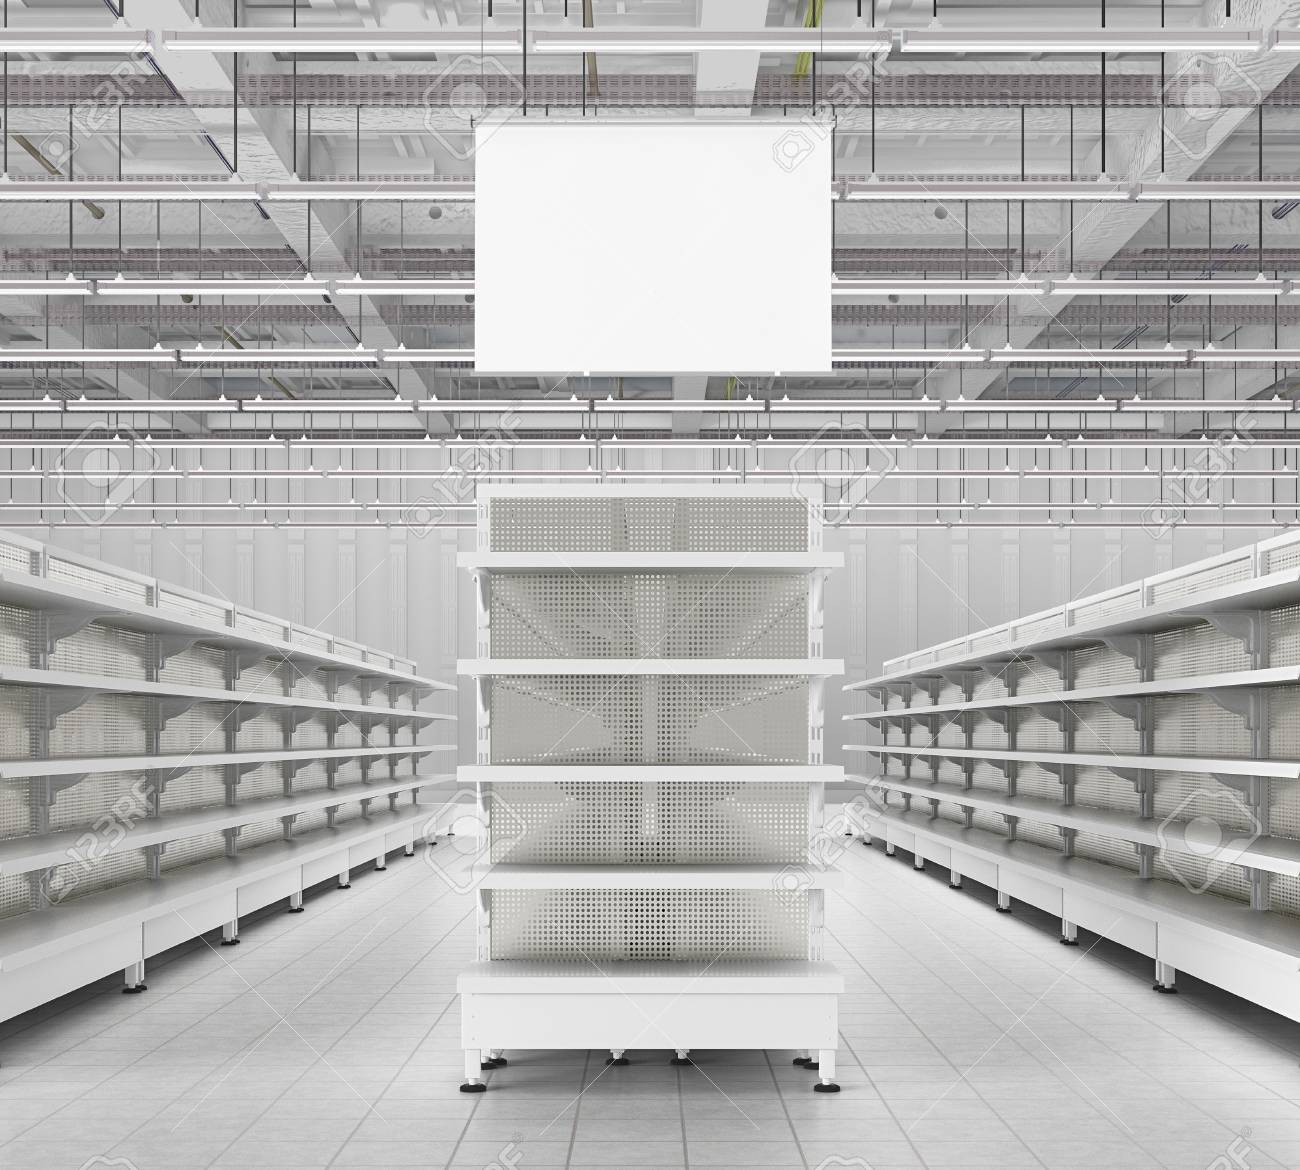 Peachy Store Interior With Empty Supermarket Shelves And Blank Advertising Home Remodeling Inspirations Genioncuboardxyz